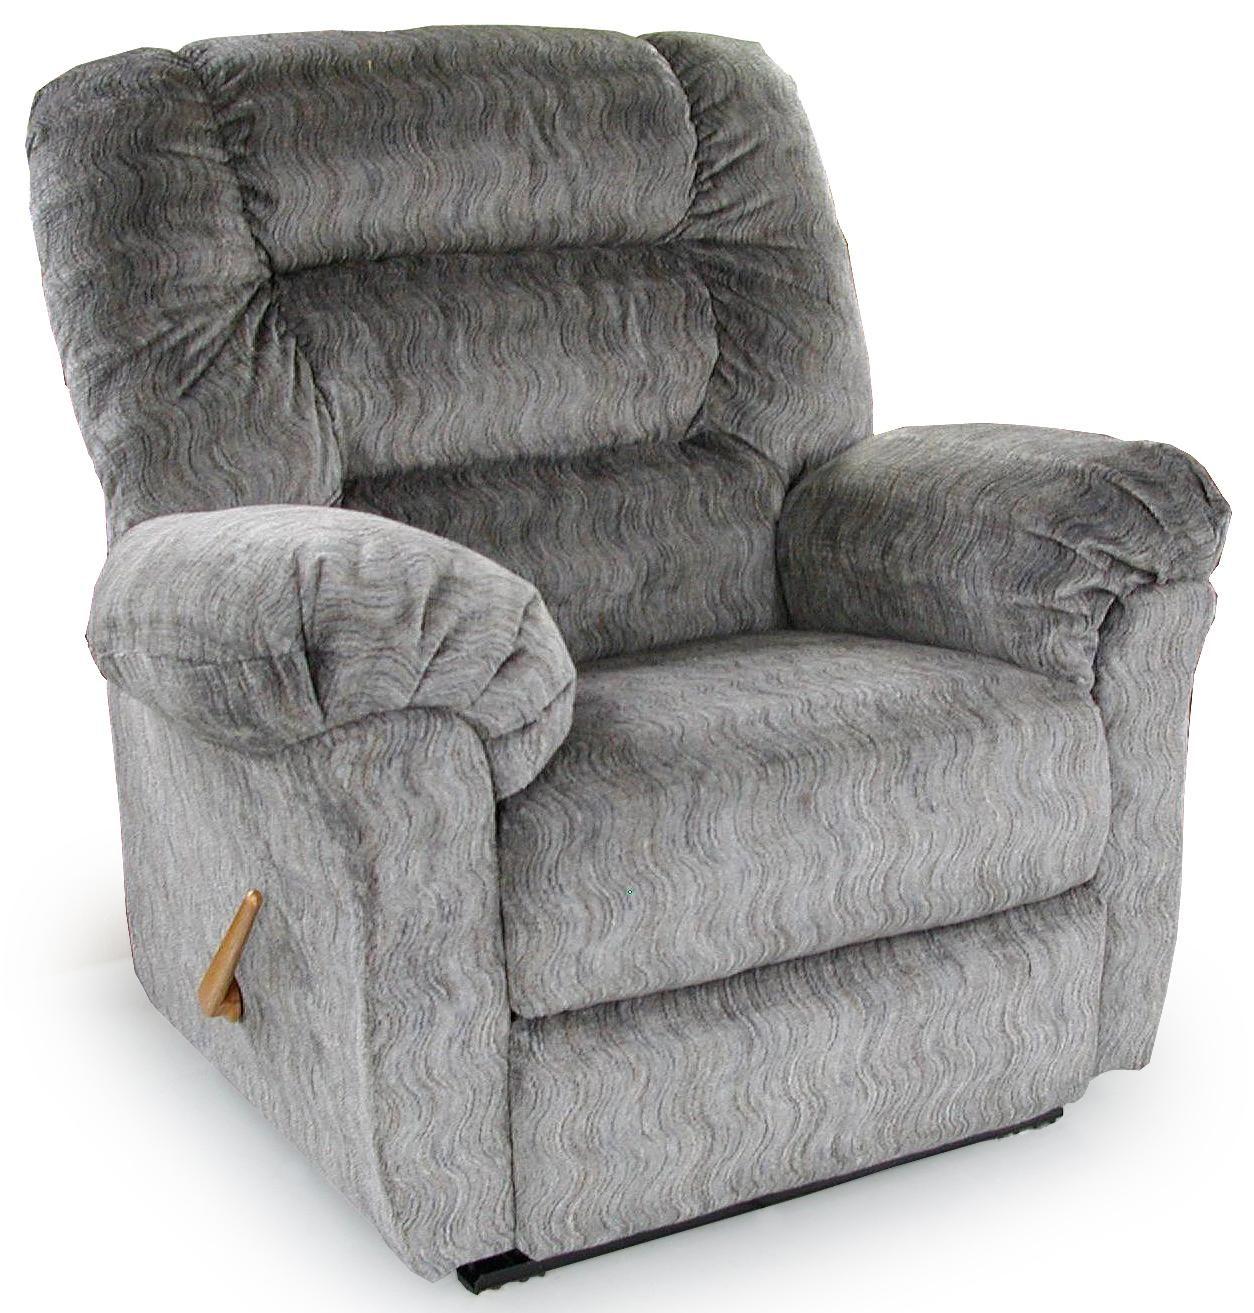 Recliners The Beast Troubador Lift Recliner By Best Home